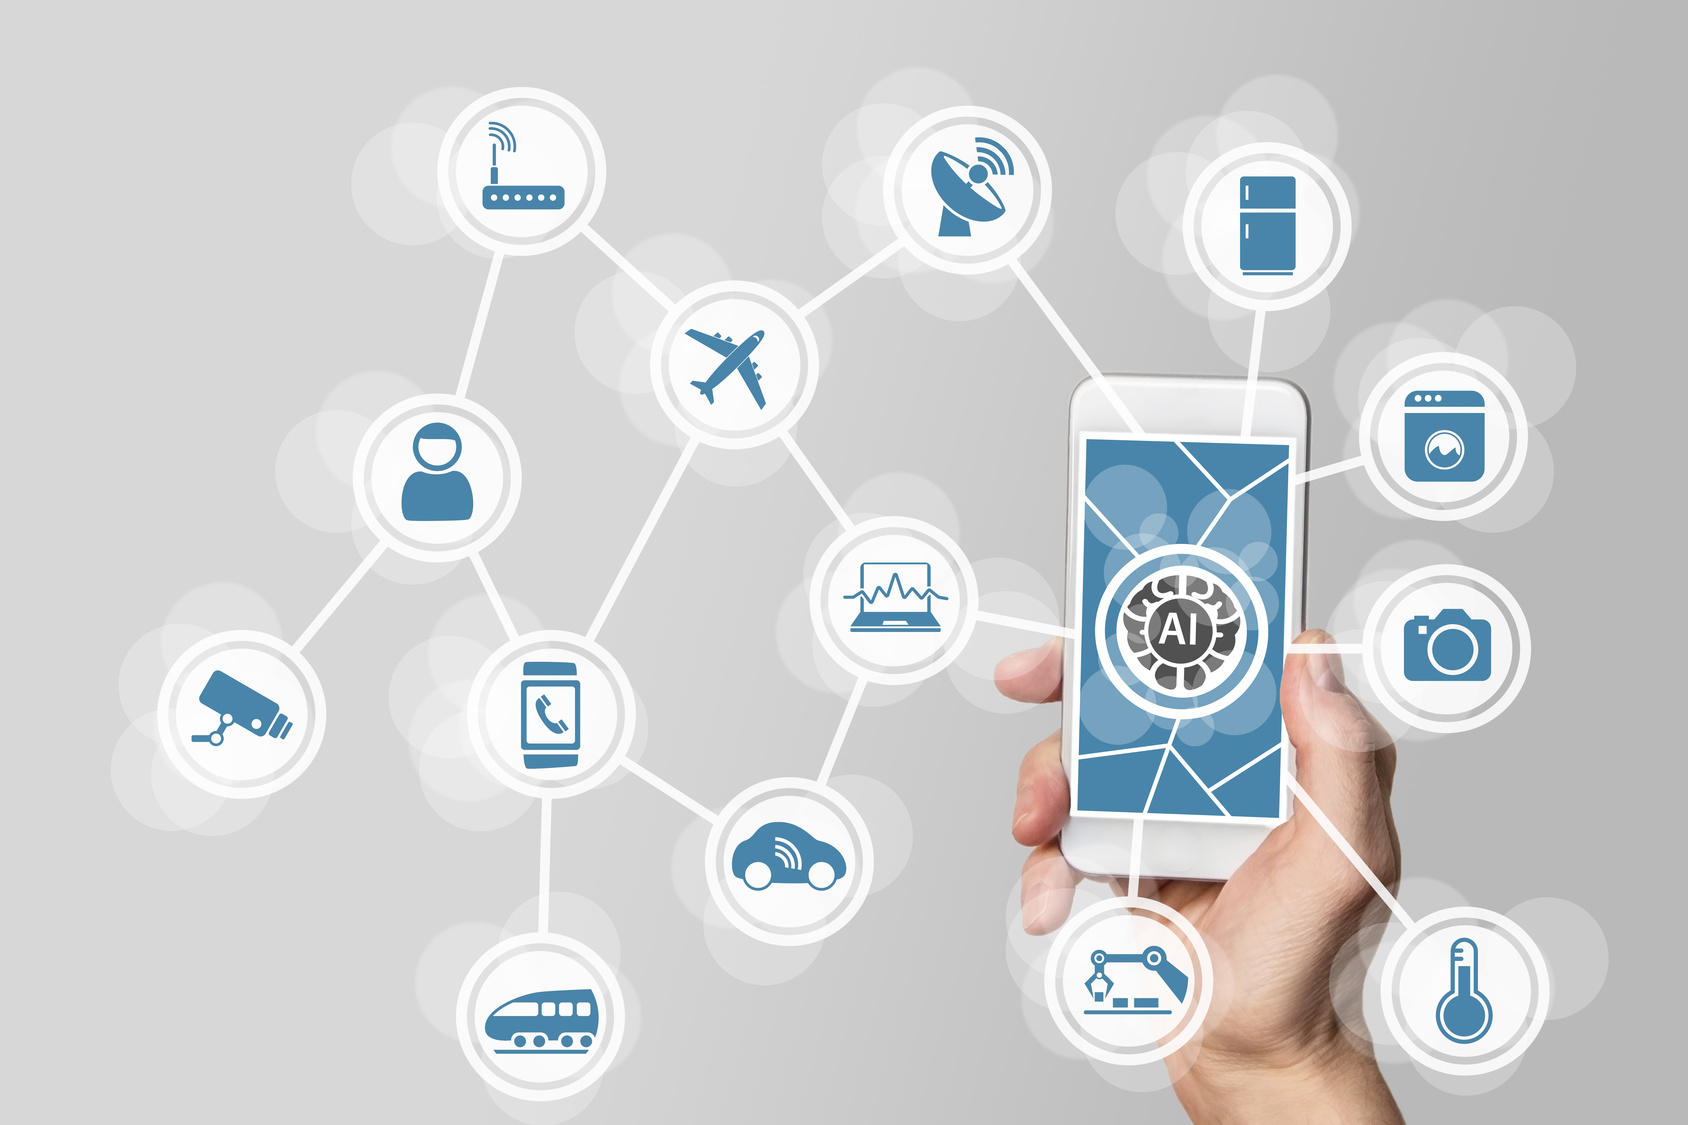 Cisco and IoT Technology: The Building Blocks behind IoT Payments